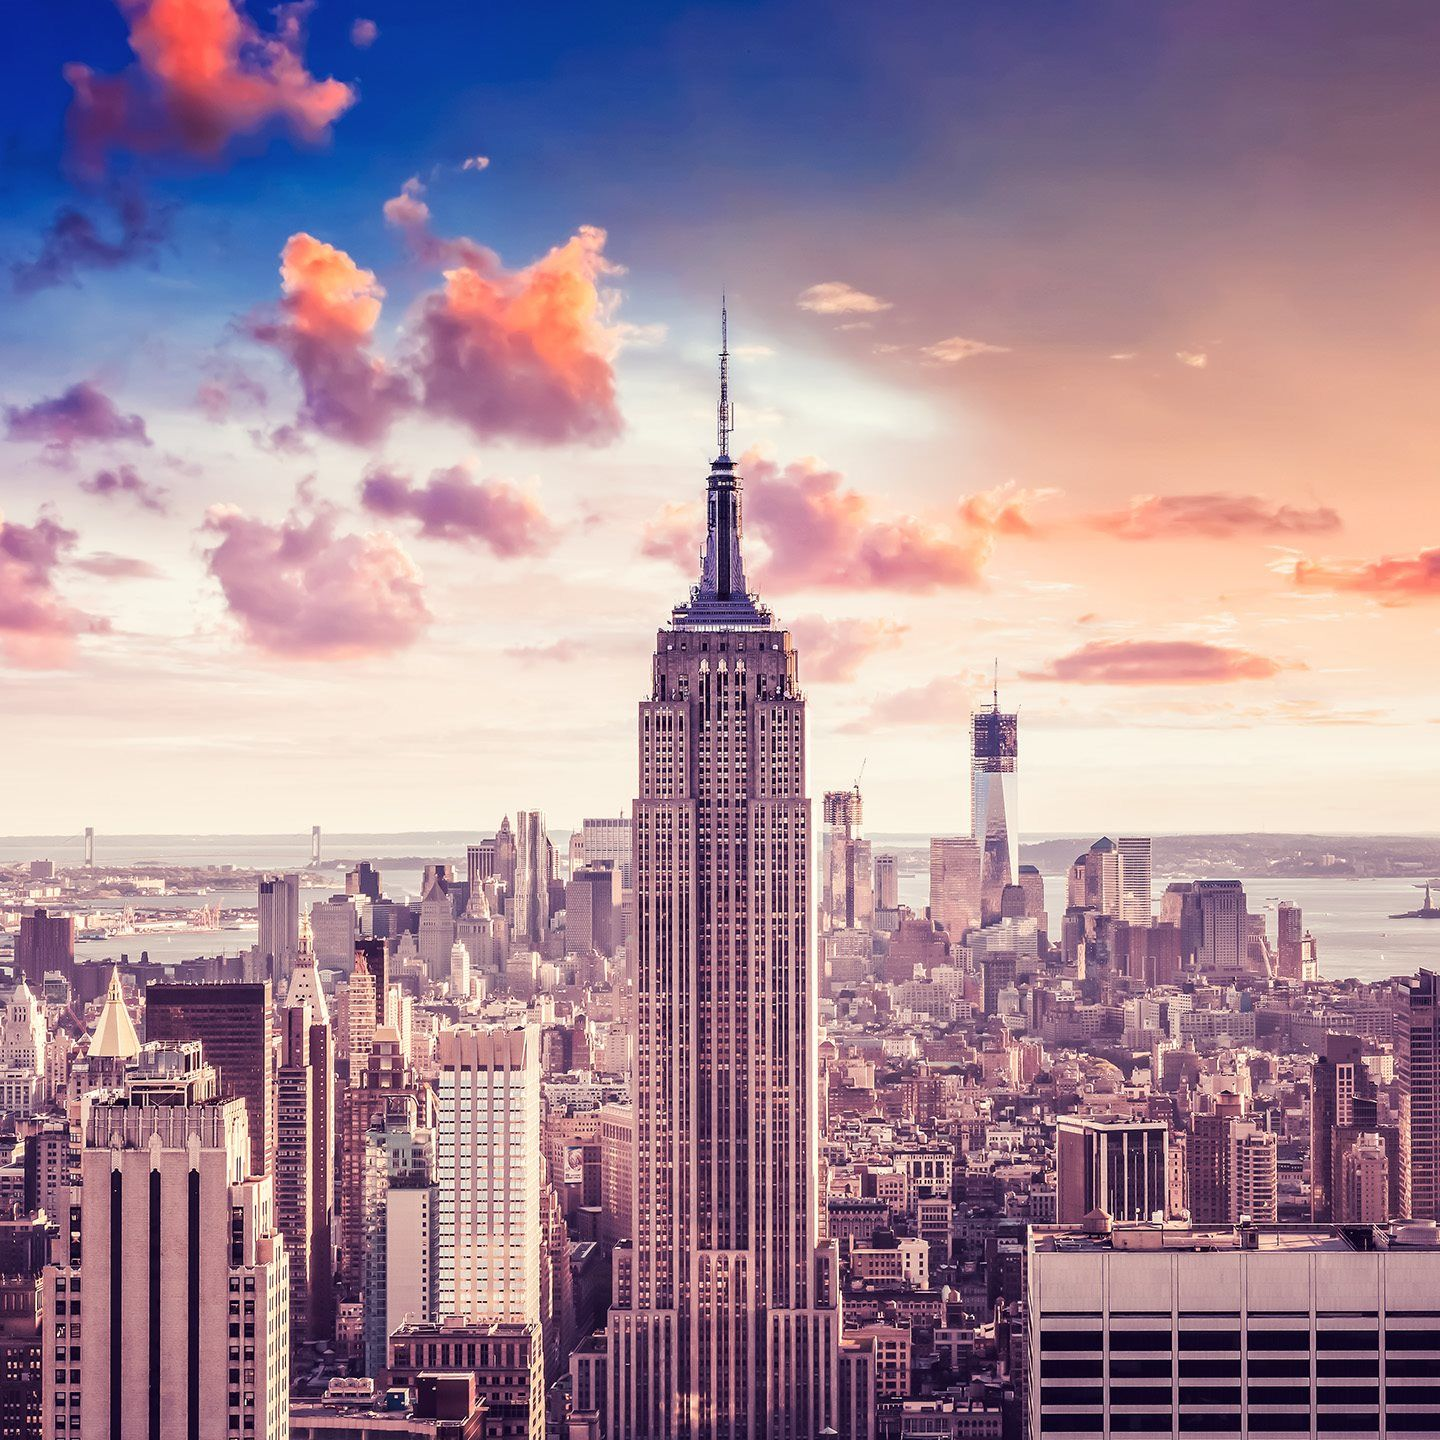 Empire State Building Wallpaper Hd Wallpapers Empire State Building Empire State Wonders Of The World